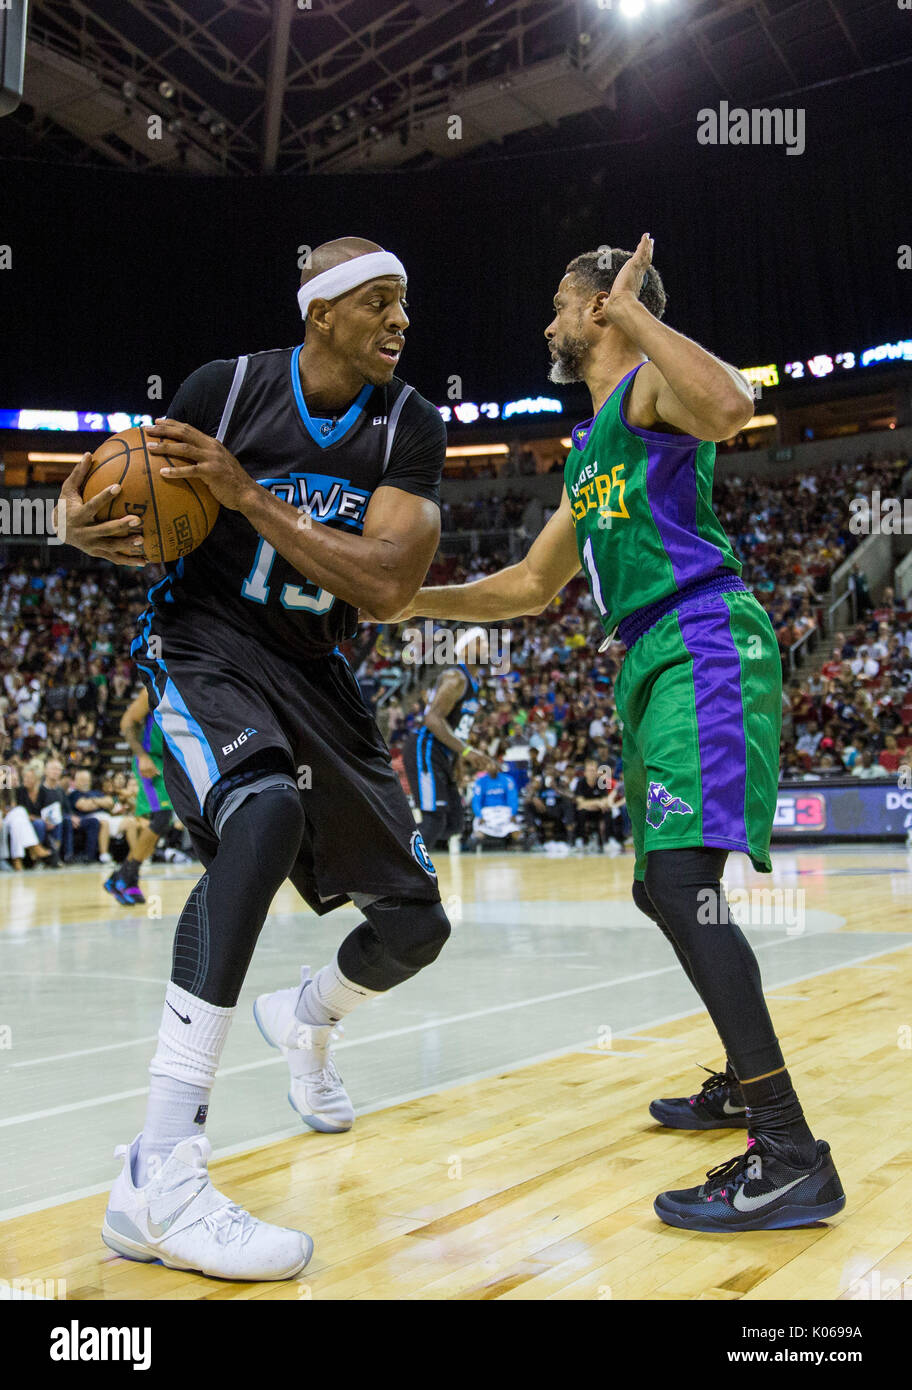 e00c3f36511a Jerome Williams  13 Power attempts to pass ball past Mahmoud Abdul-Rauf  7  3 Headed Monsters week nine BIG3 three-on-three basketball league KeyArena  August ...